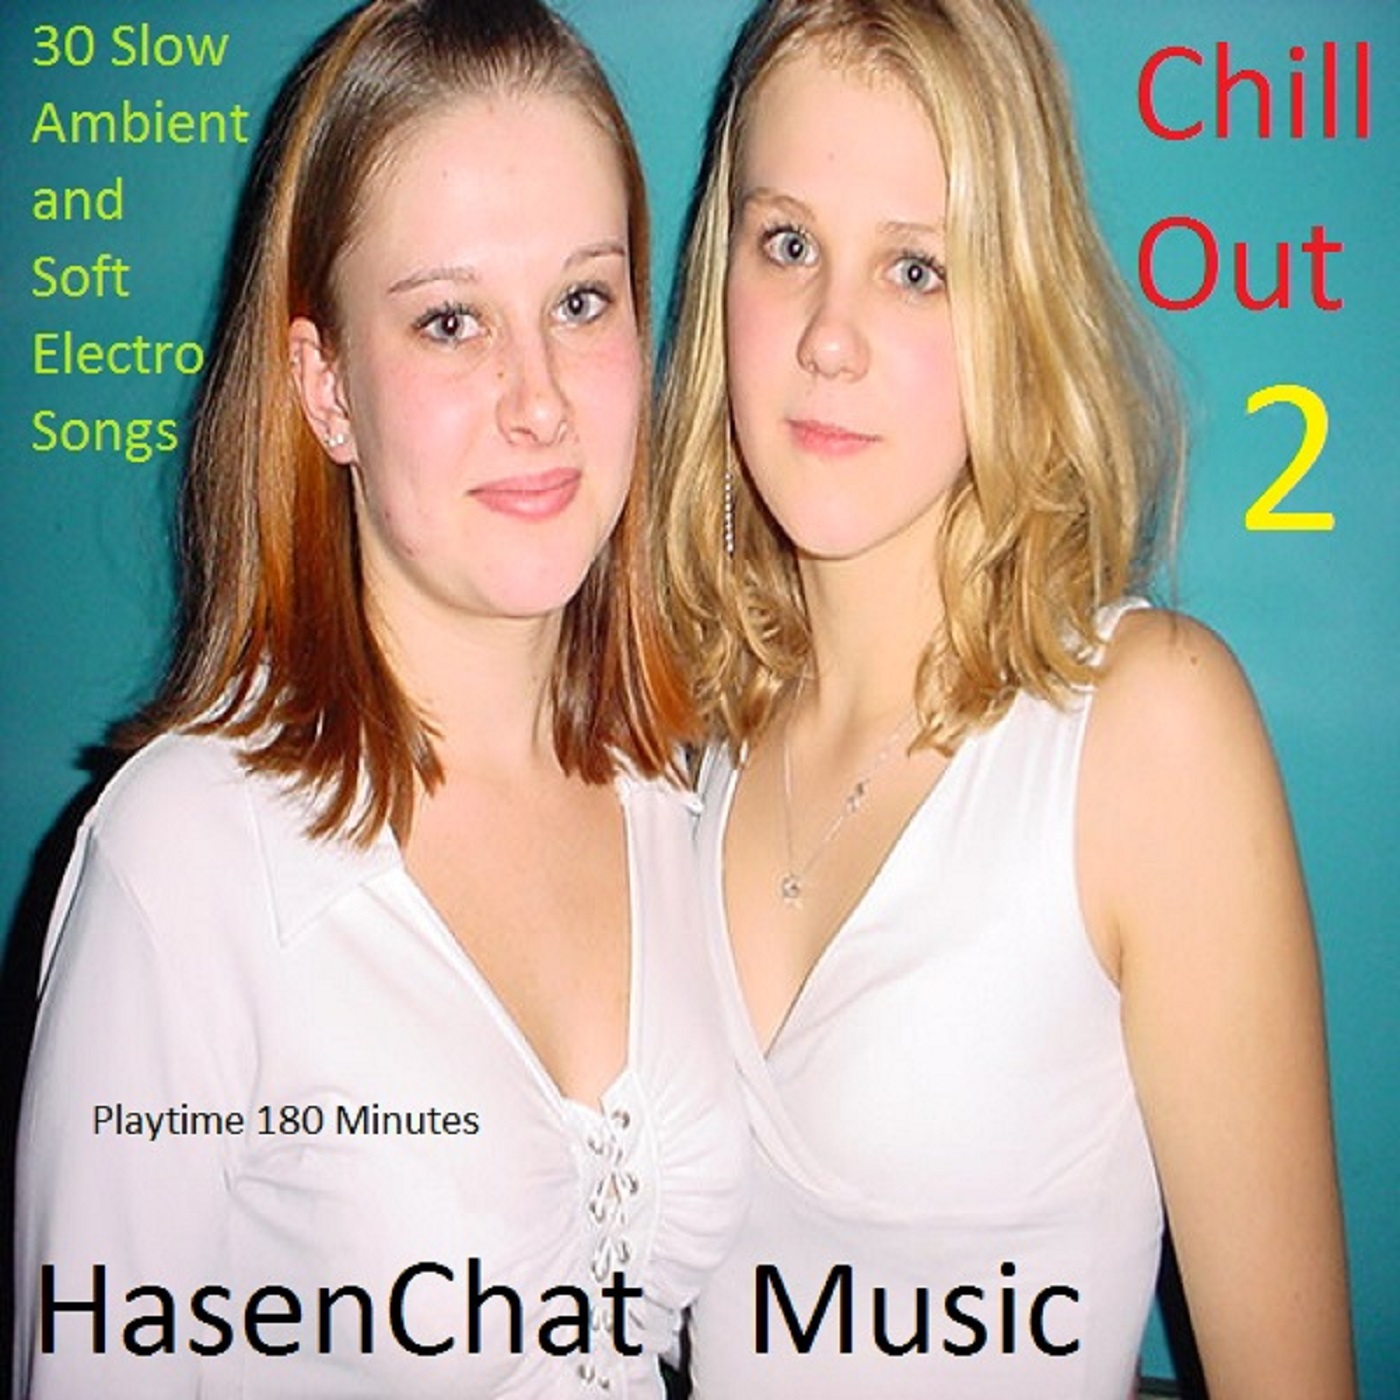 HasenChat Music - Chill Out 2